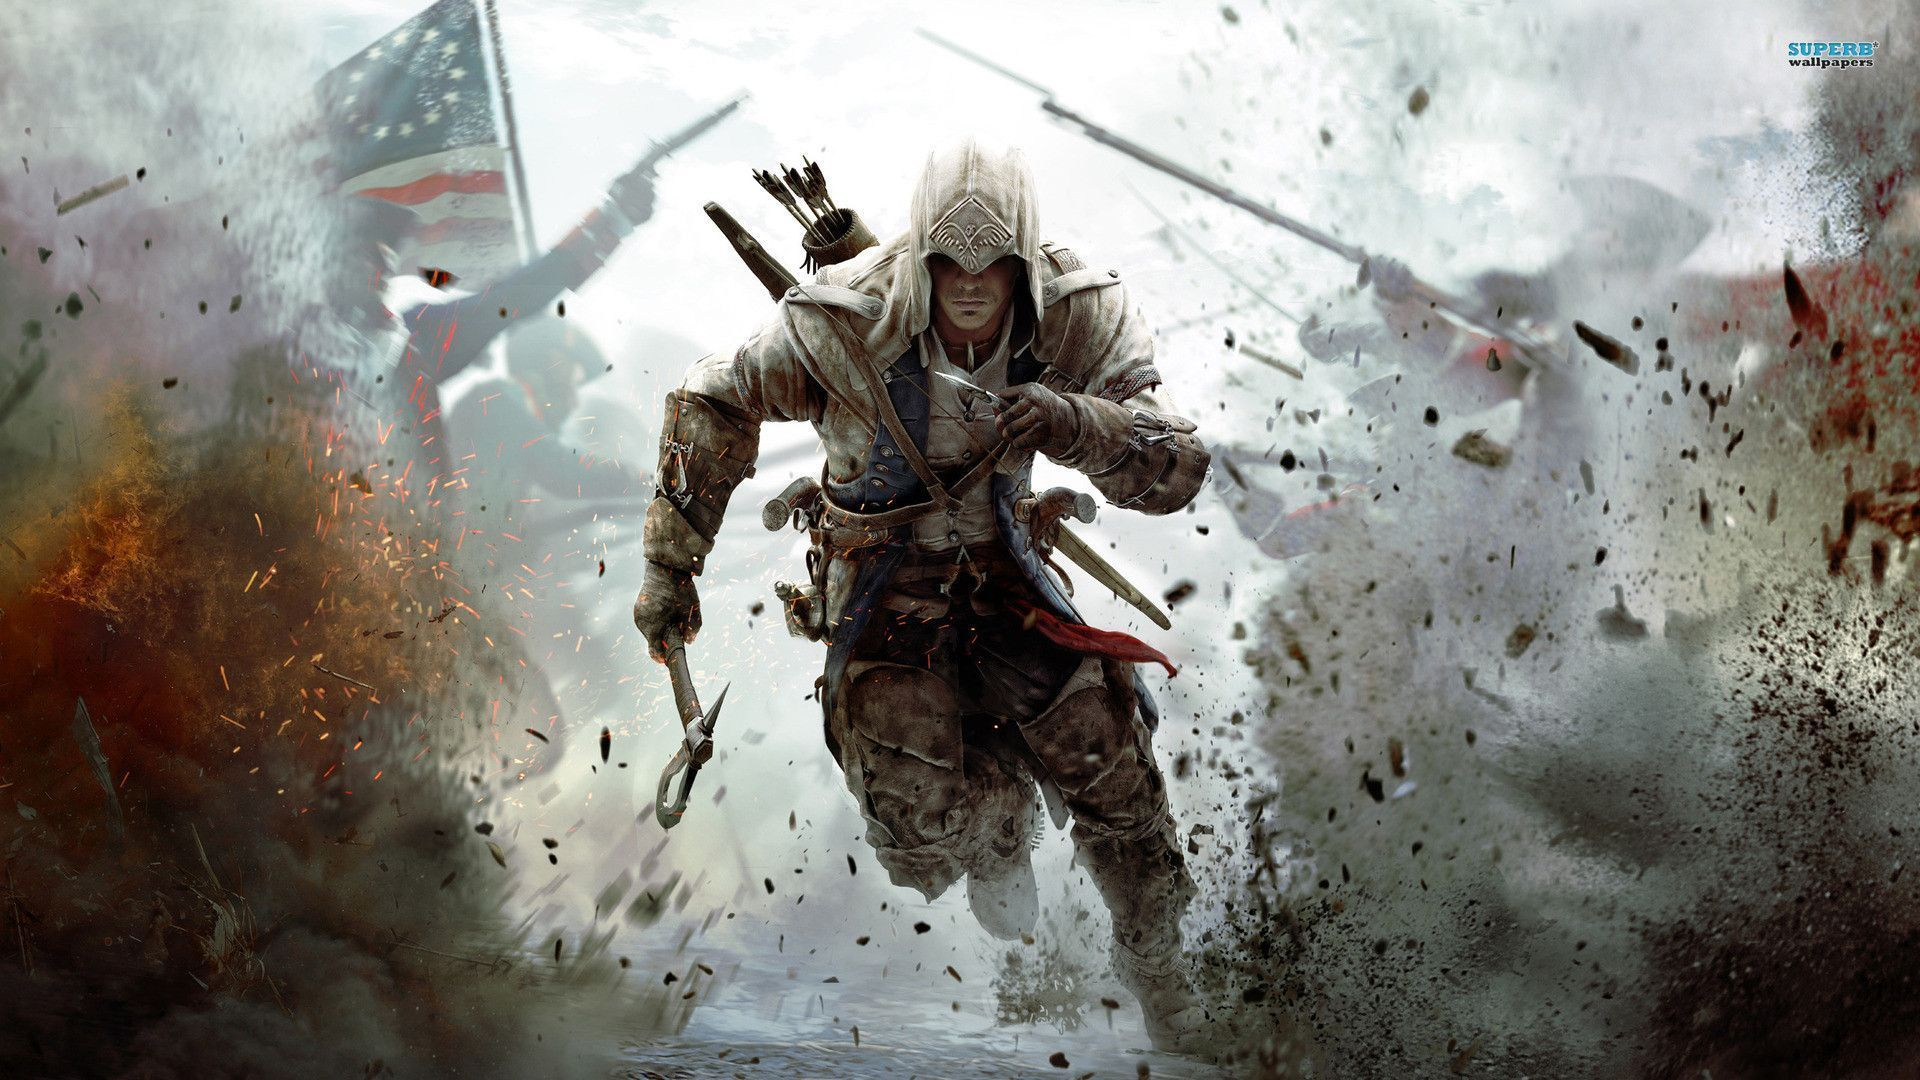 Assassins Creed  Is Free To Download On Pc In December Keengamer